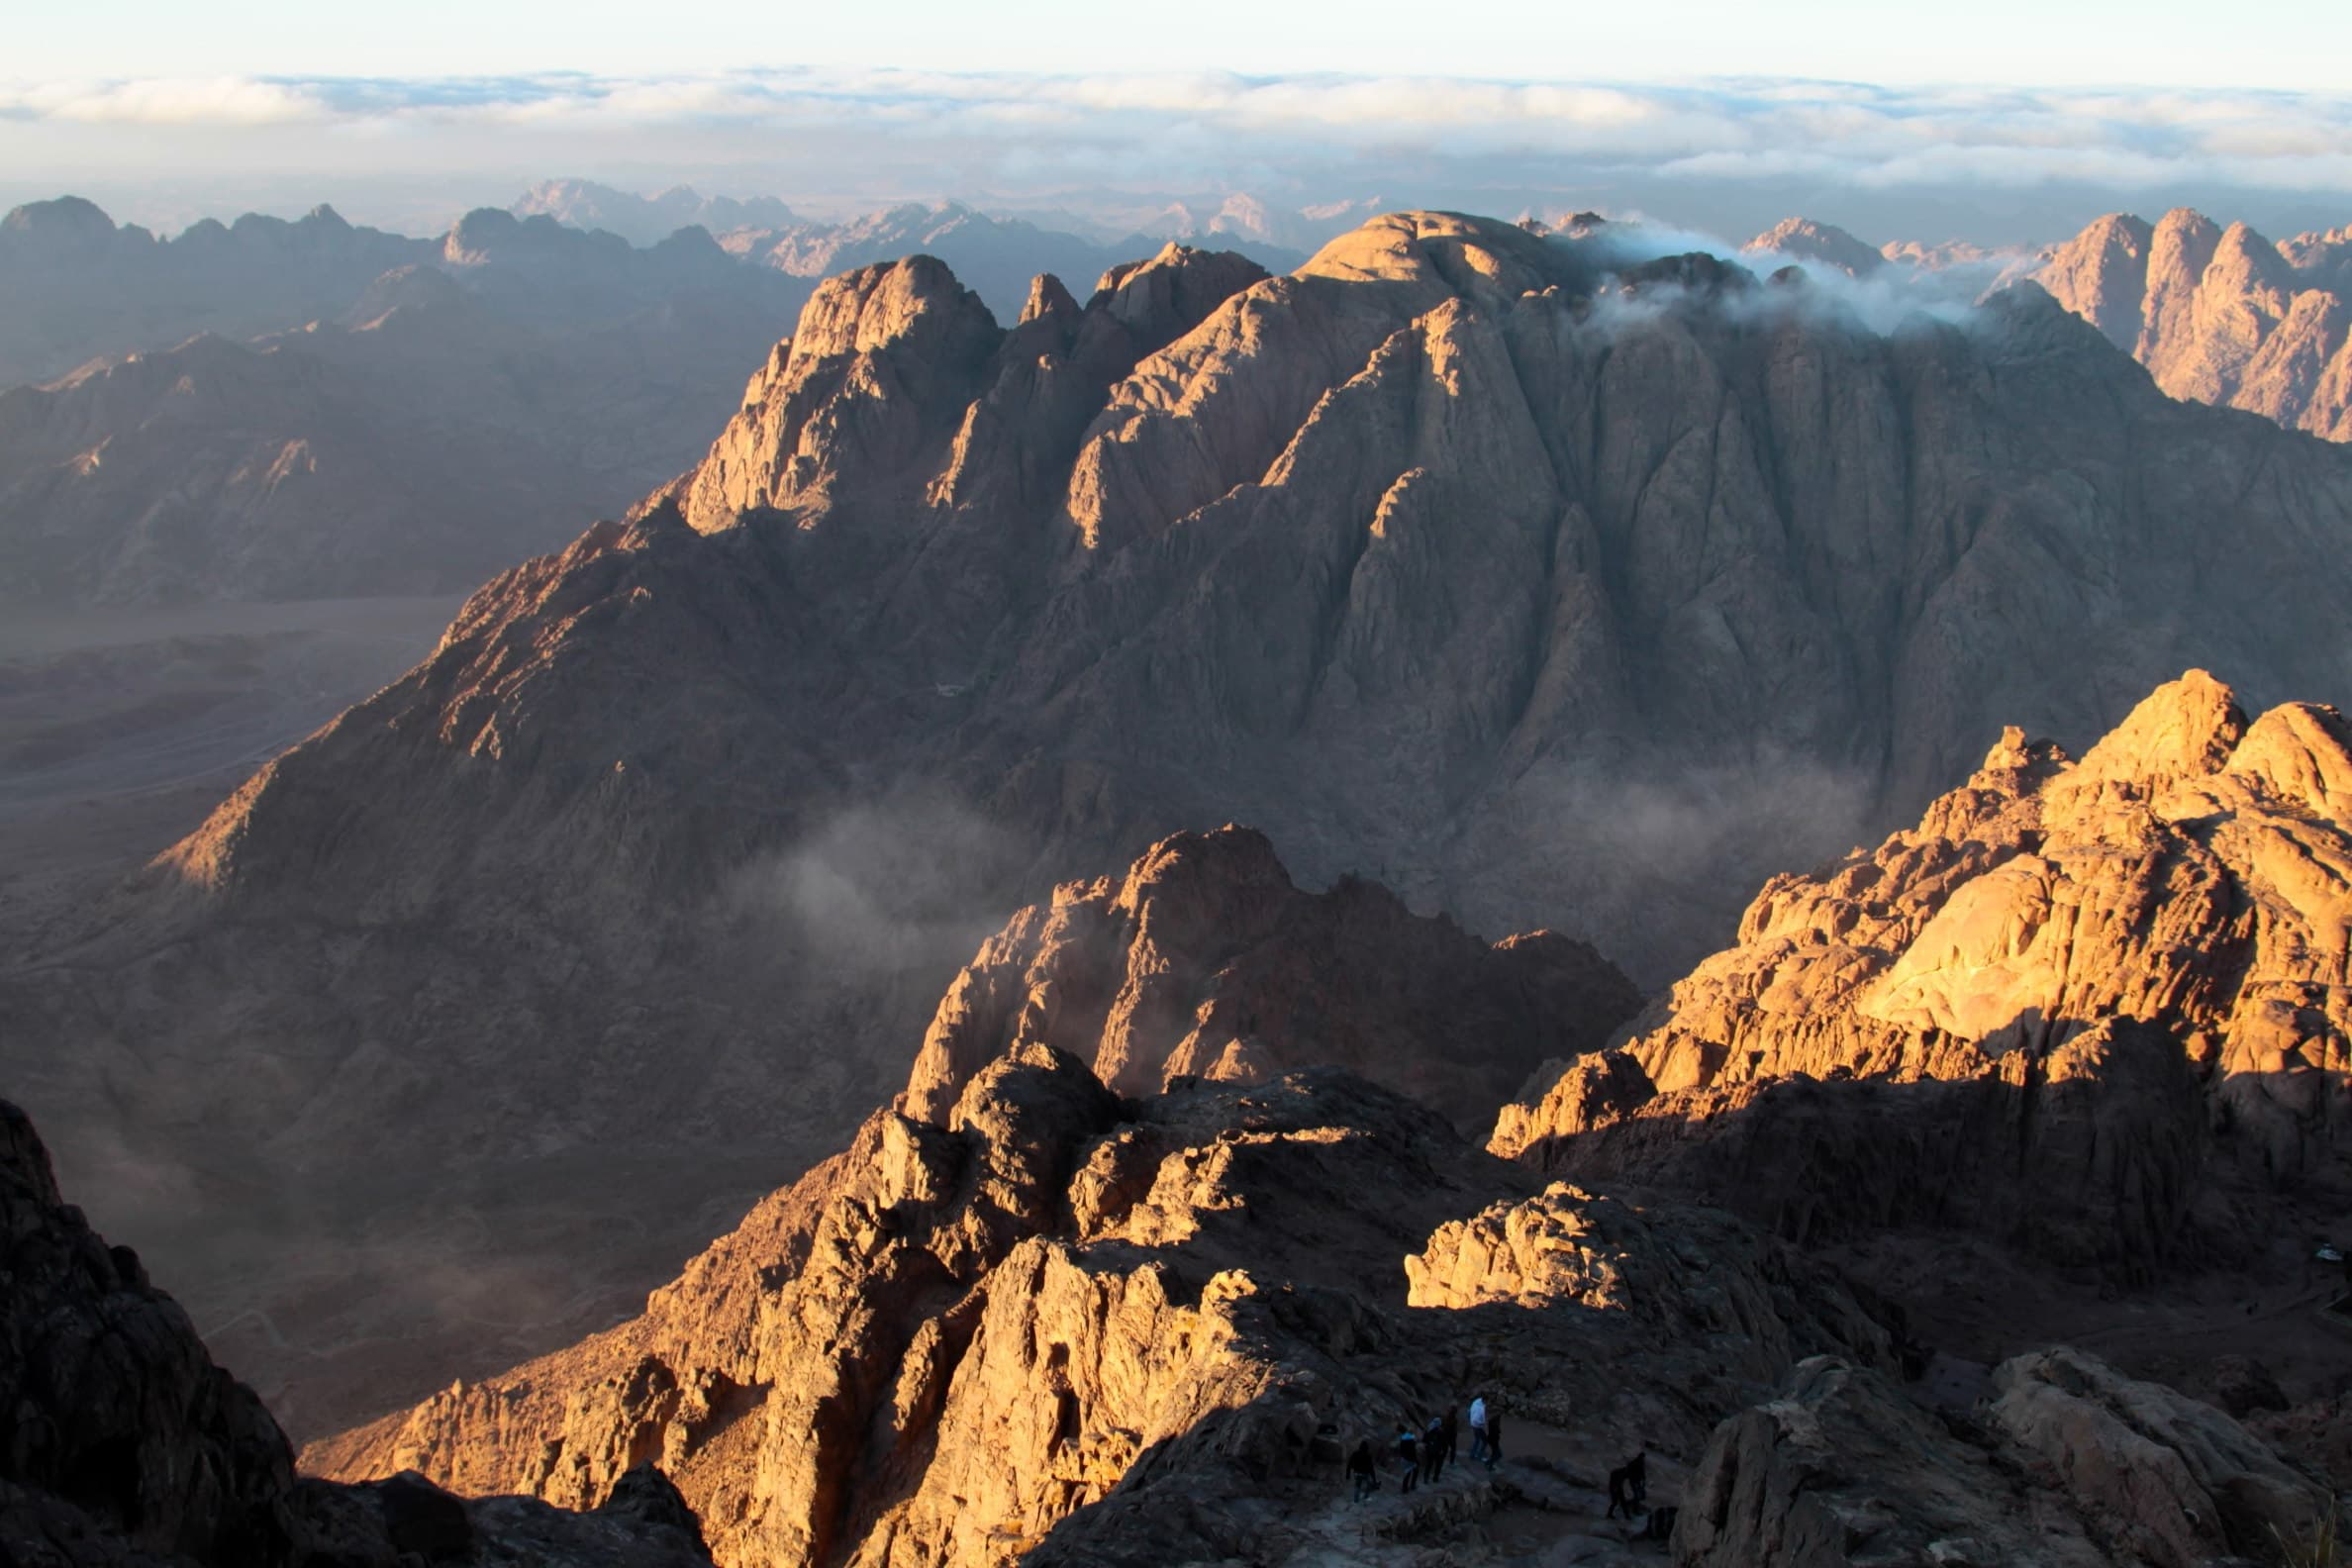 Mount Sinai Wallpapers 2376x1584